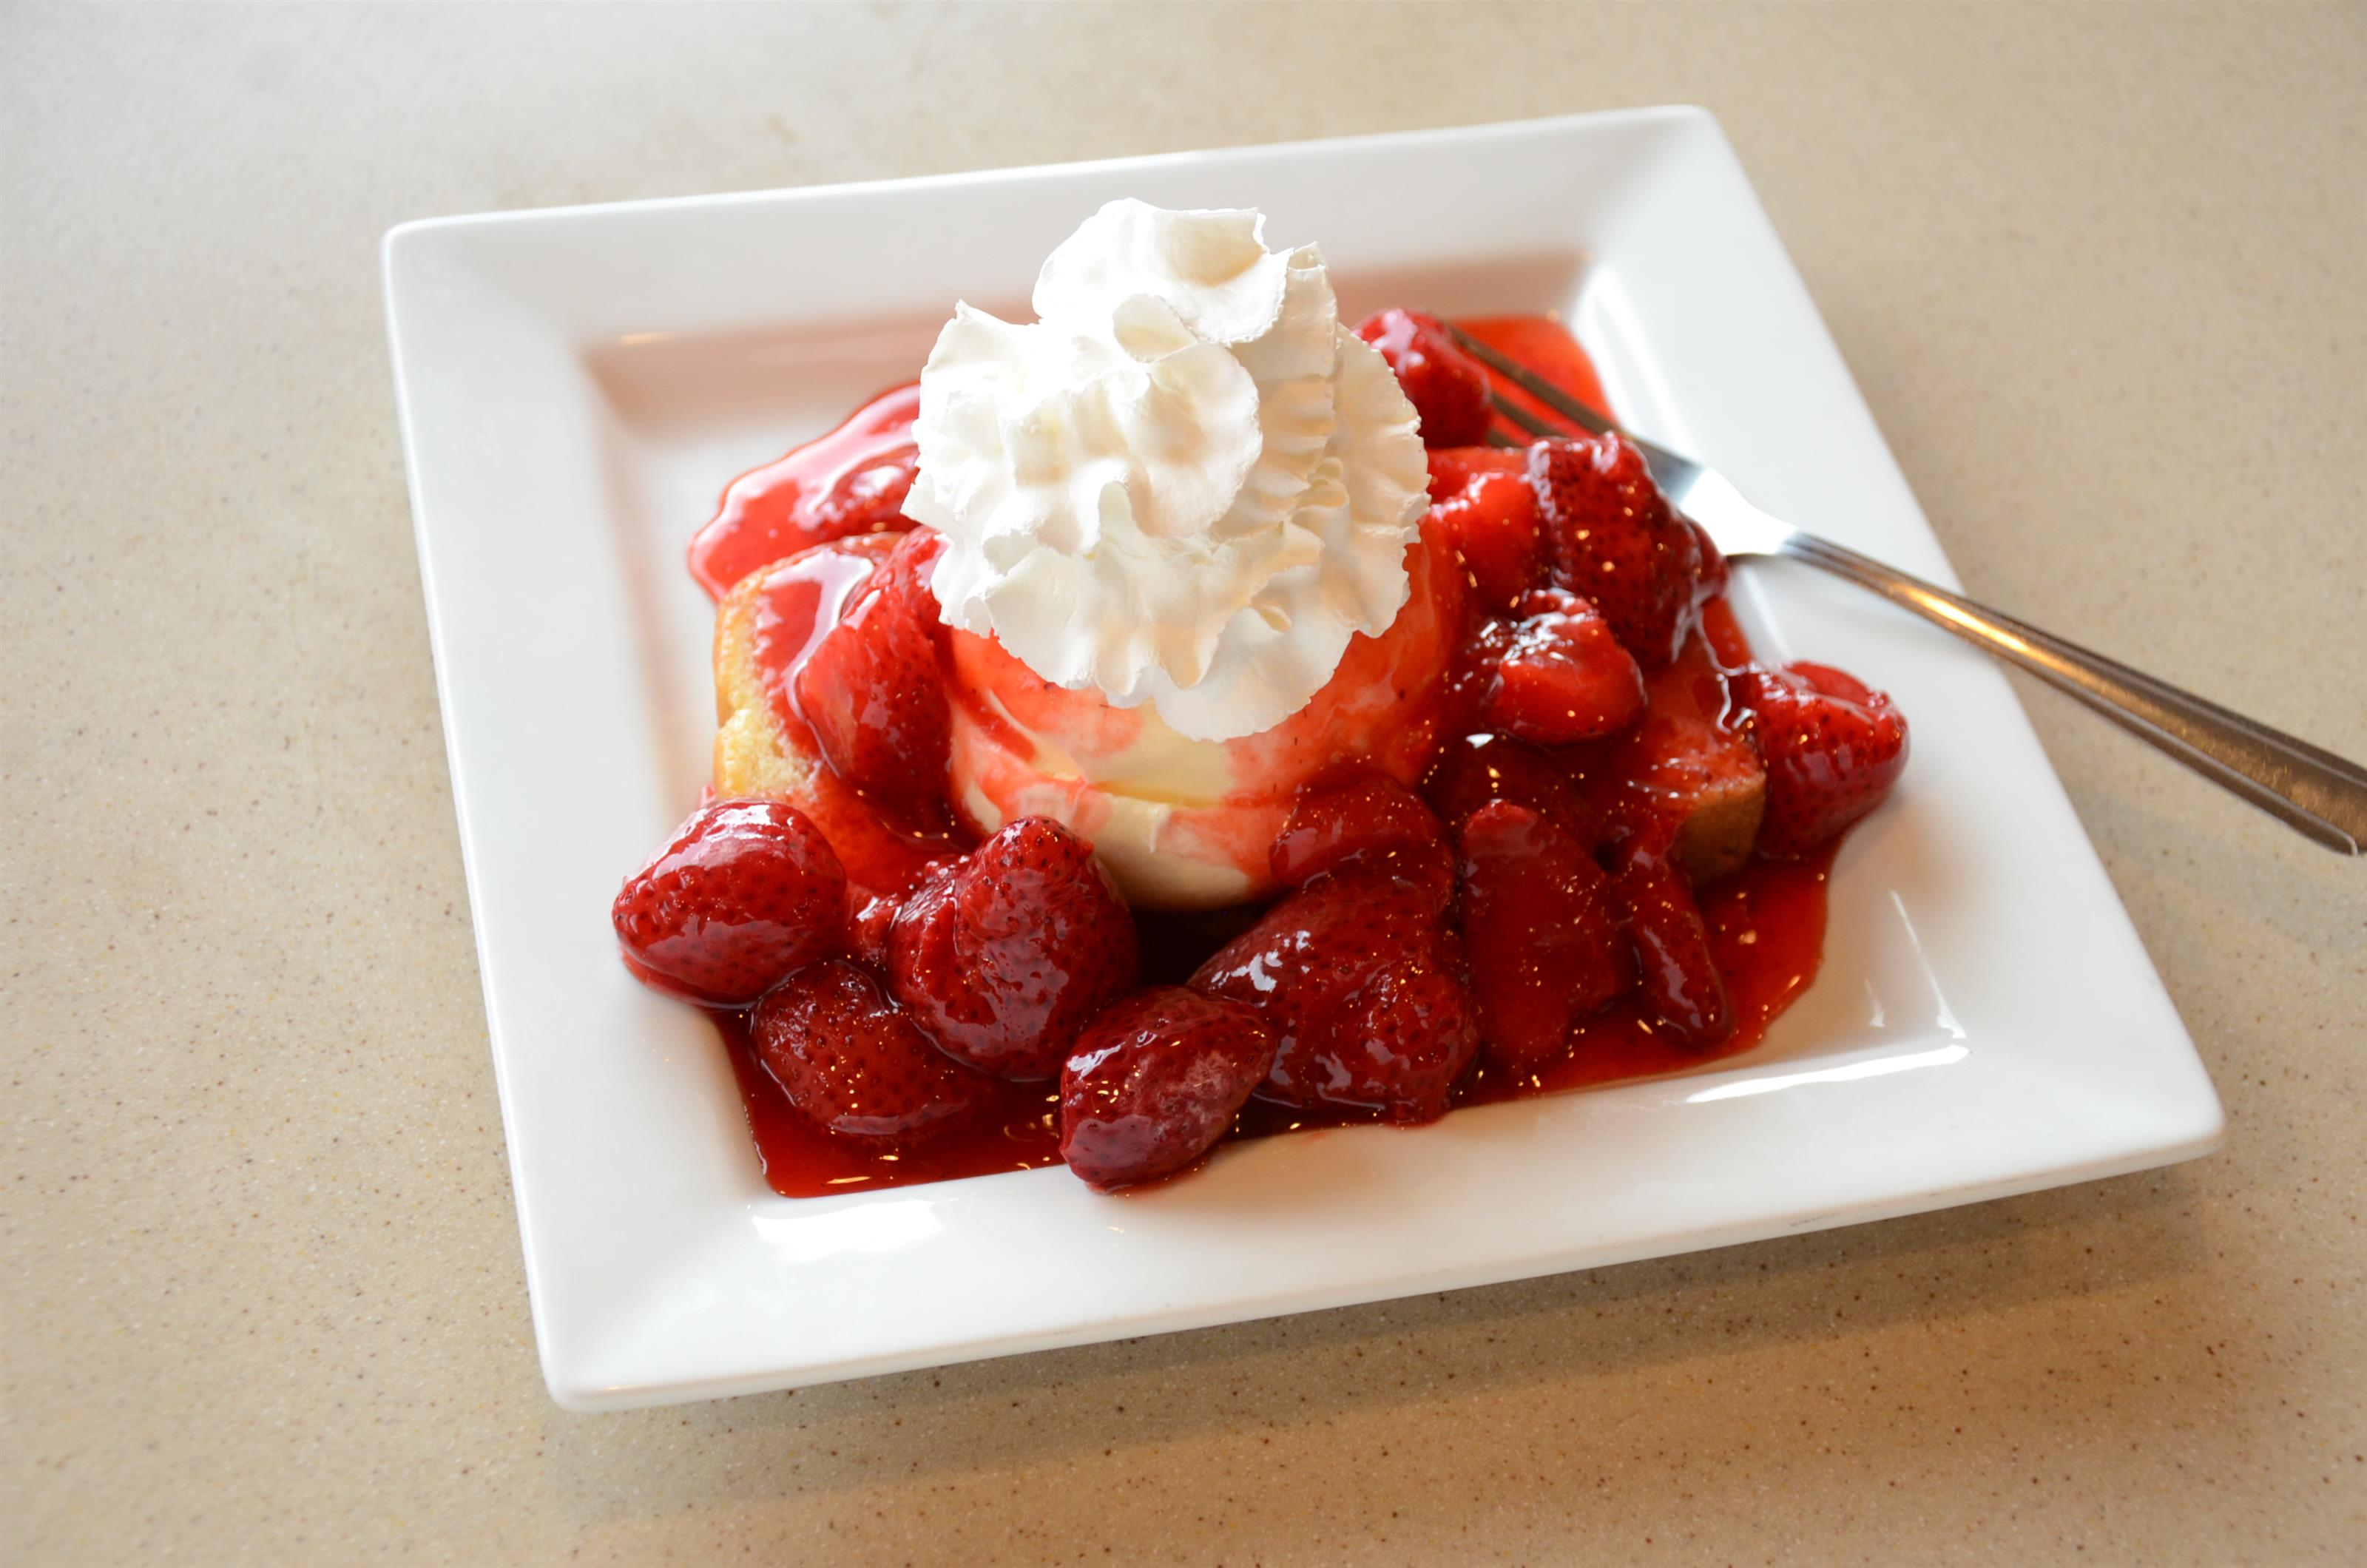 strawberry cheesecake with whole strawberries and whipped cream